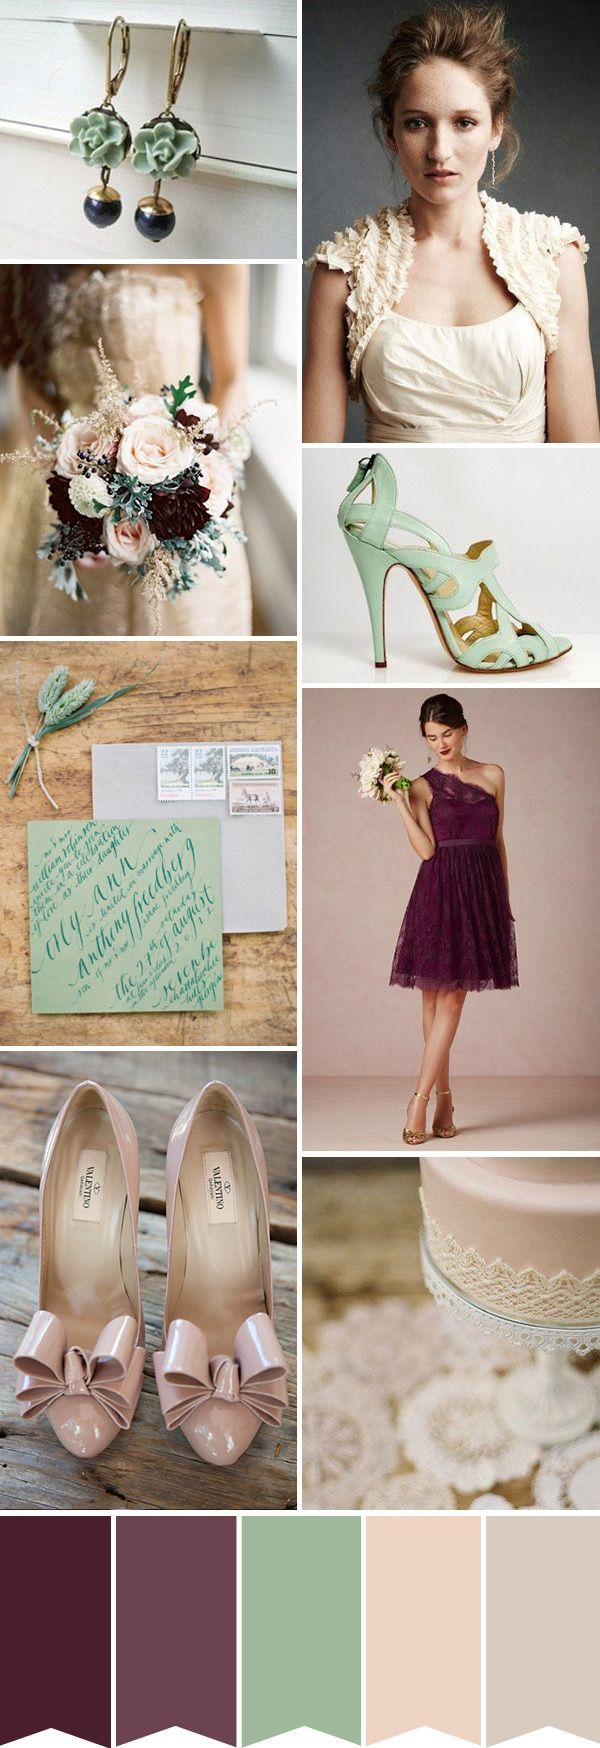 5 Shades Of Purple Wedding Color Ideas